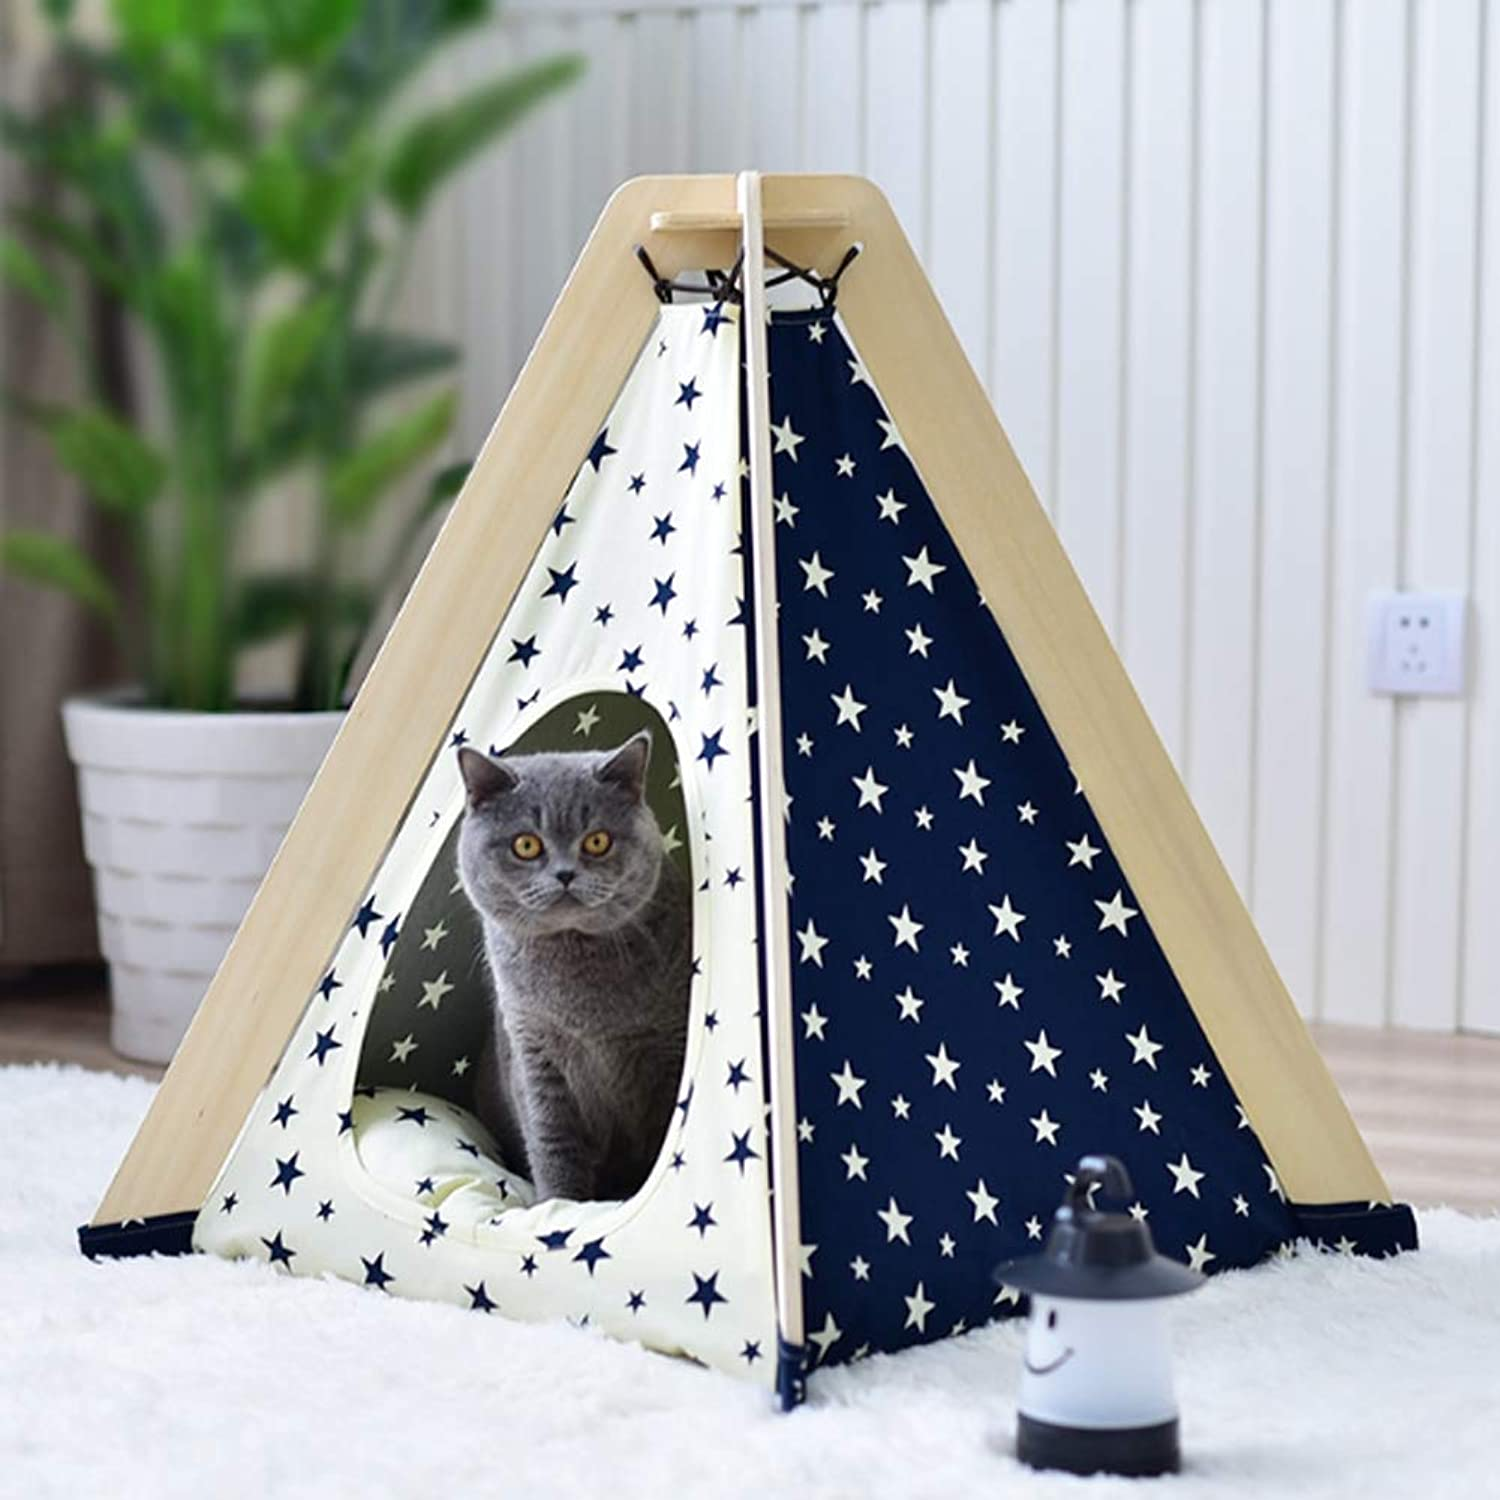 Curved Star Pet Tent Dog Bed Portable Puppy Cat Teepee with Cushion Four Seasons Resting Place Toy House Shelter,CurvedStar,Nopad